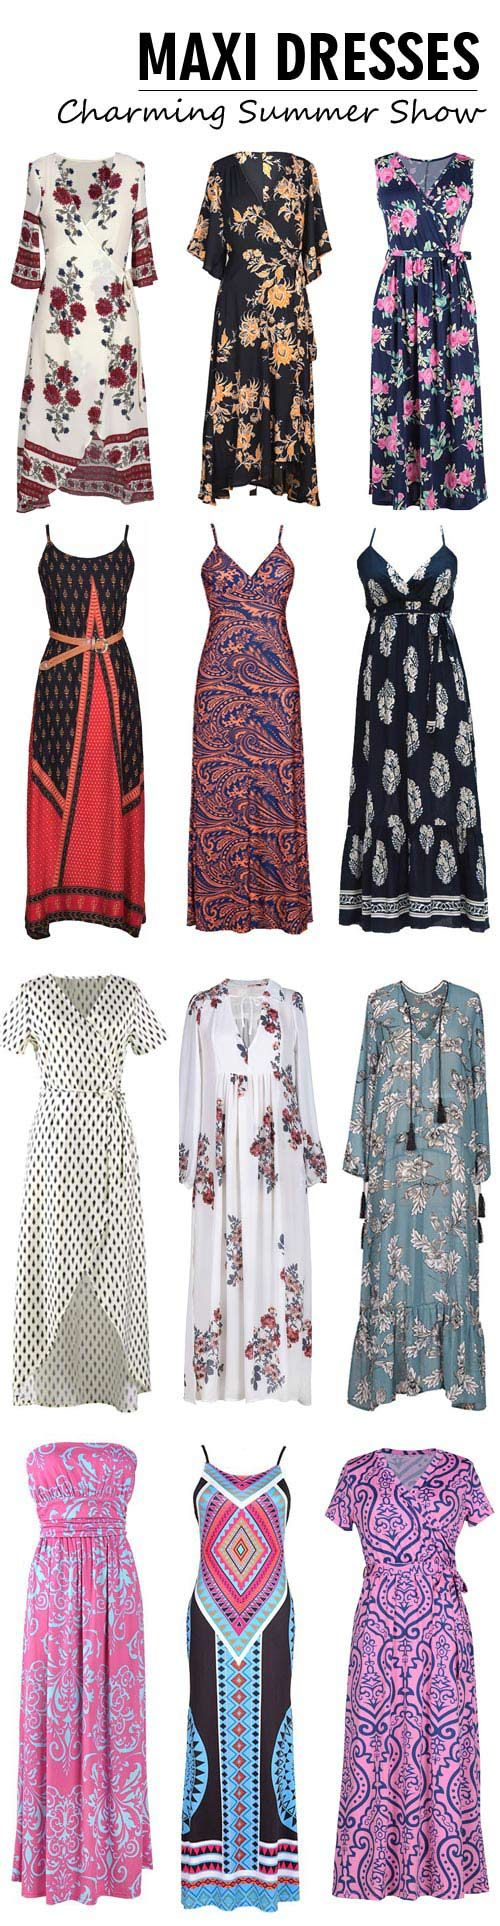 We have all the maxi-dresses to let you dazzle in chic style! They are well-designed in comfortable fabric. Find more amazing maxi-dresses at Cupshe.com !